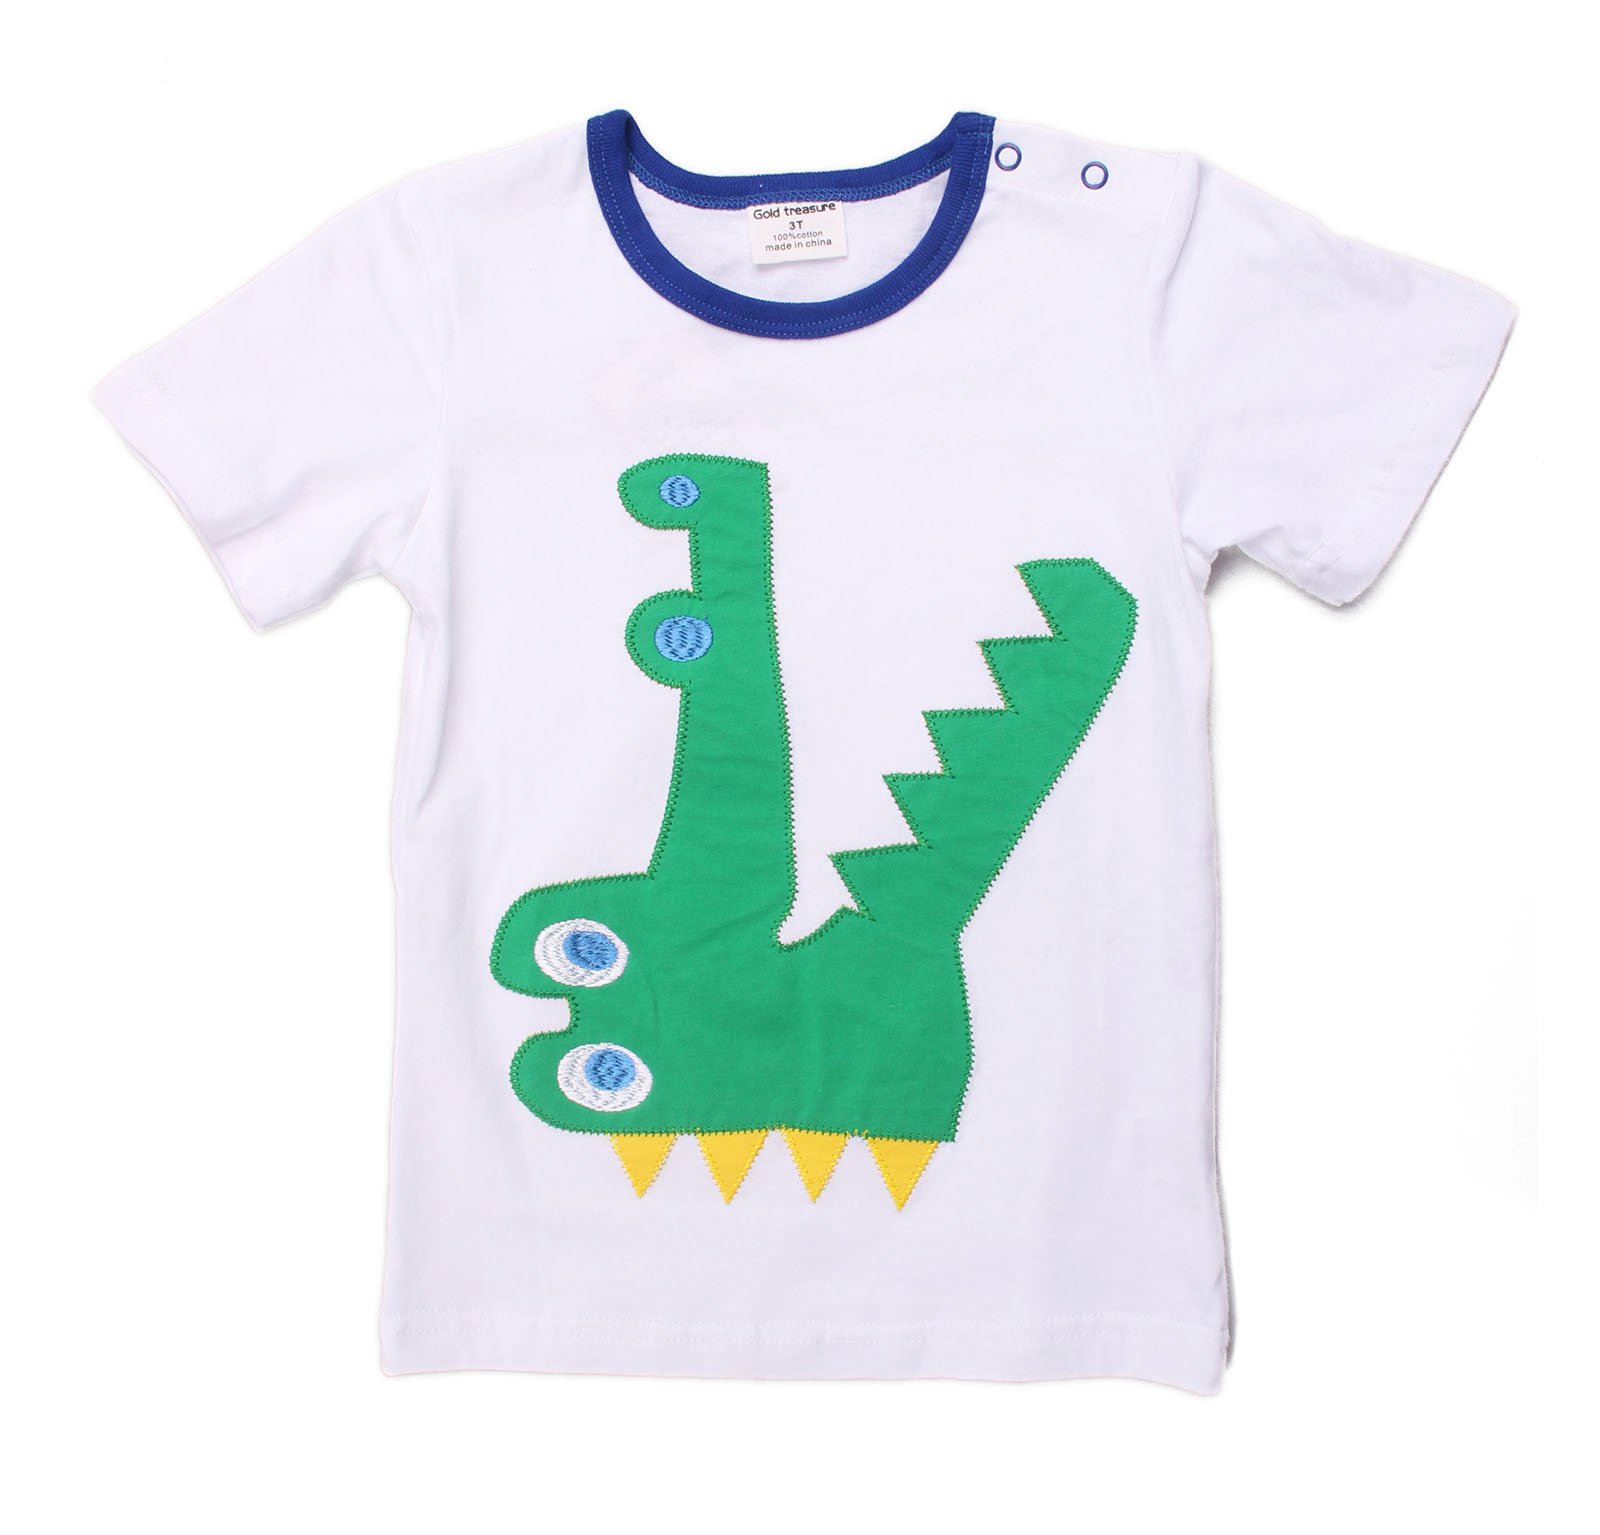 Dizoon Little Boys Tee Alligator Summer Tops Toddler Crew Neck Casual T-Shirts